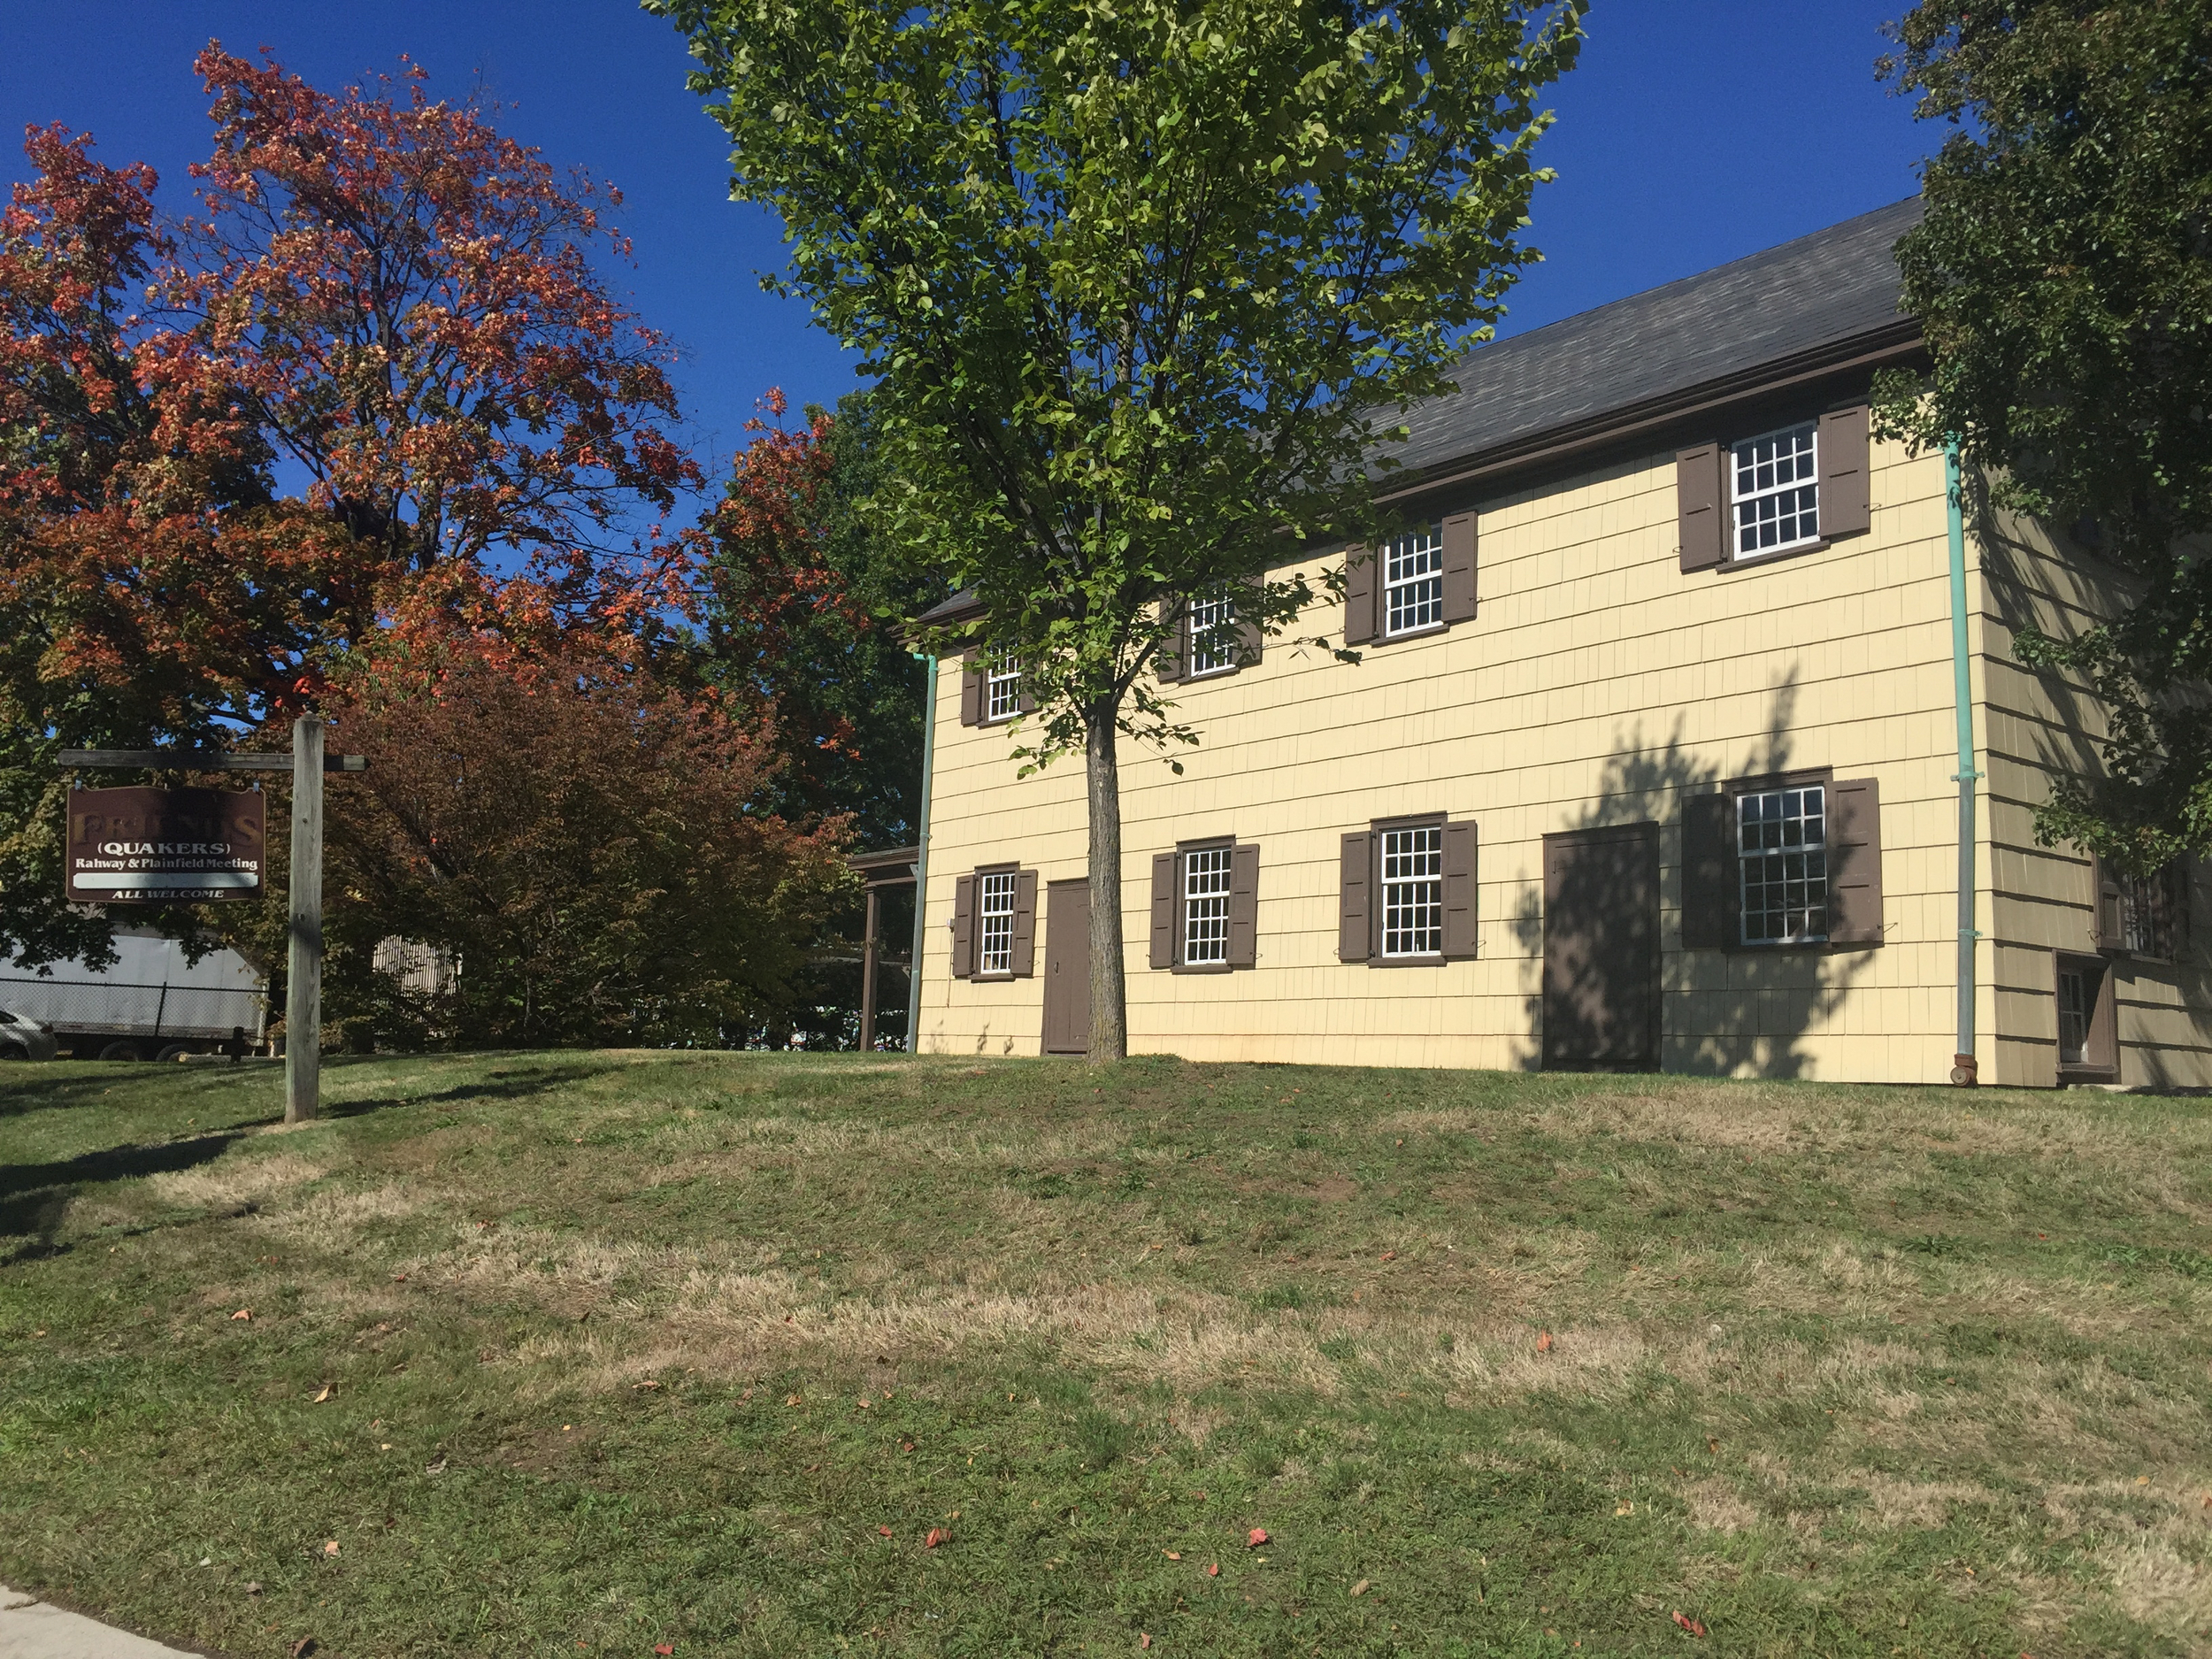 The Quaker Meeting House | 223-233 Watchung Avenue | Built 1788 | Colonial